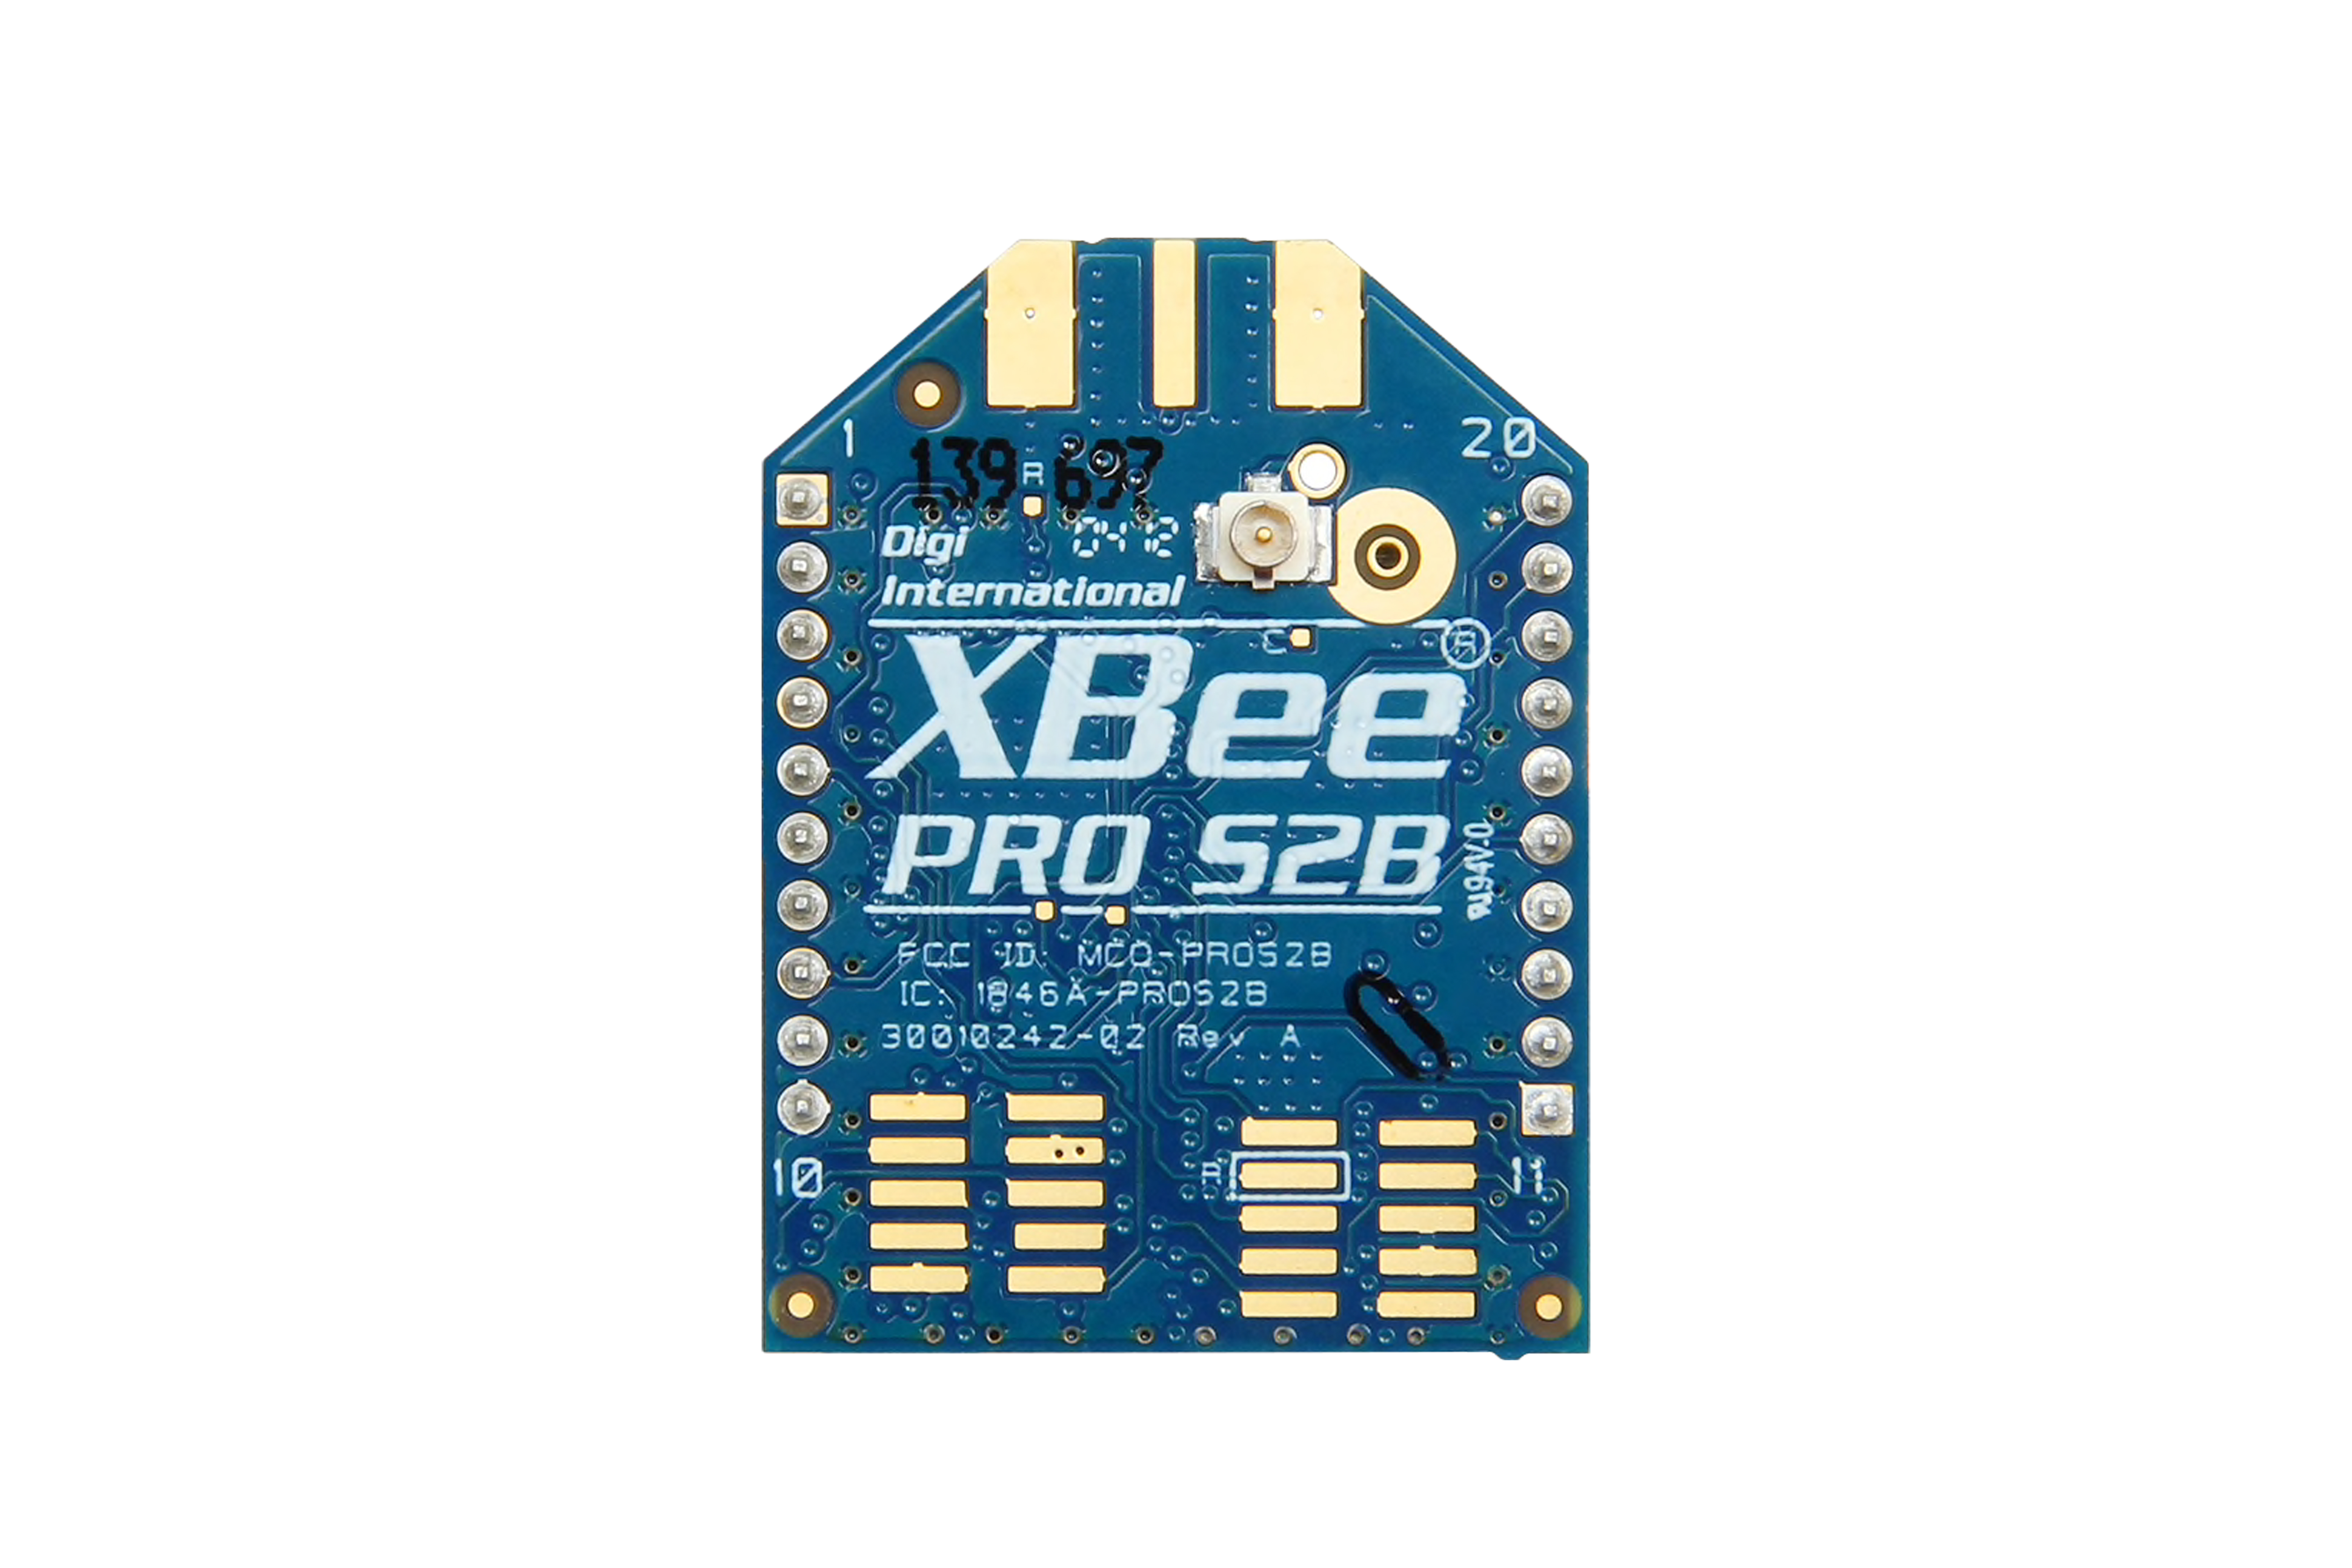 XBee 802.15.4 Pro S1 Module Wire Antenna - Xbp24-Awi-1